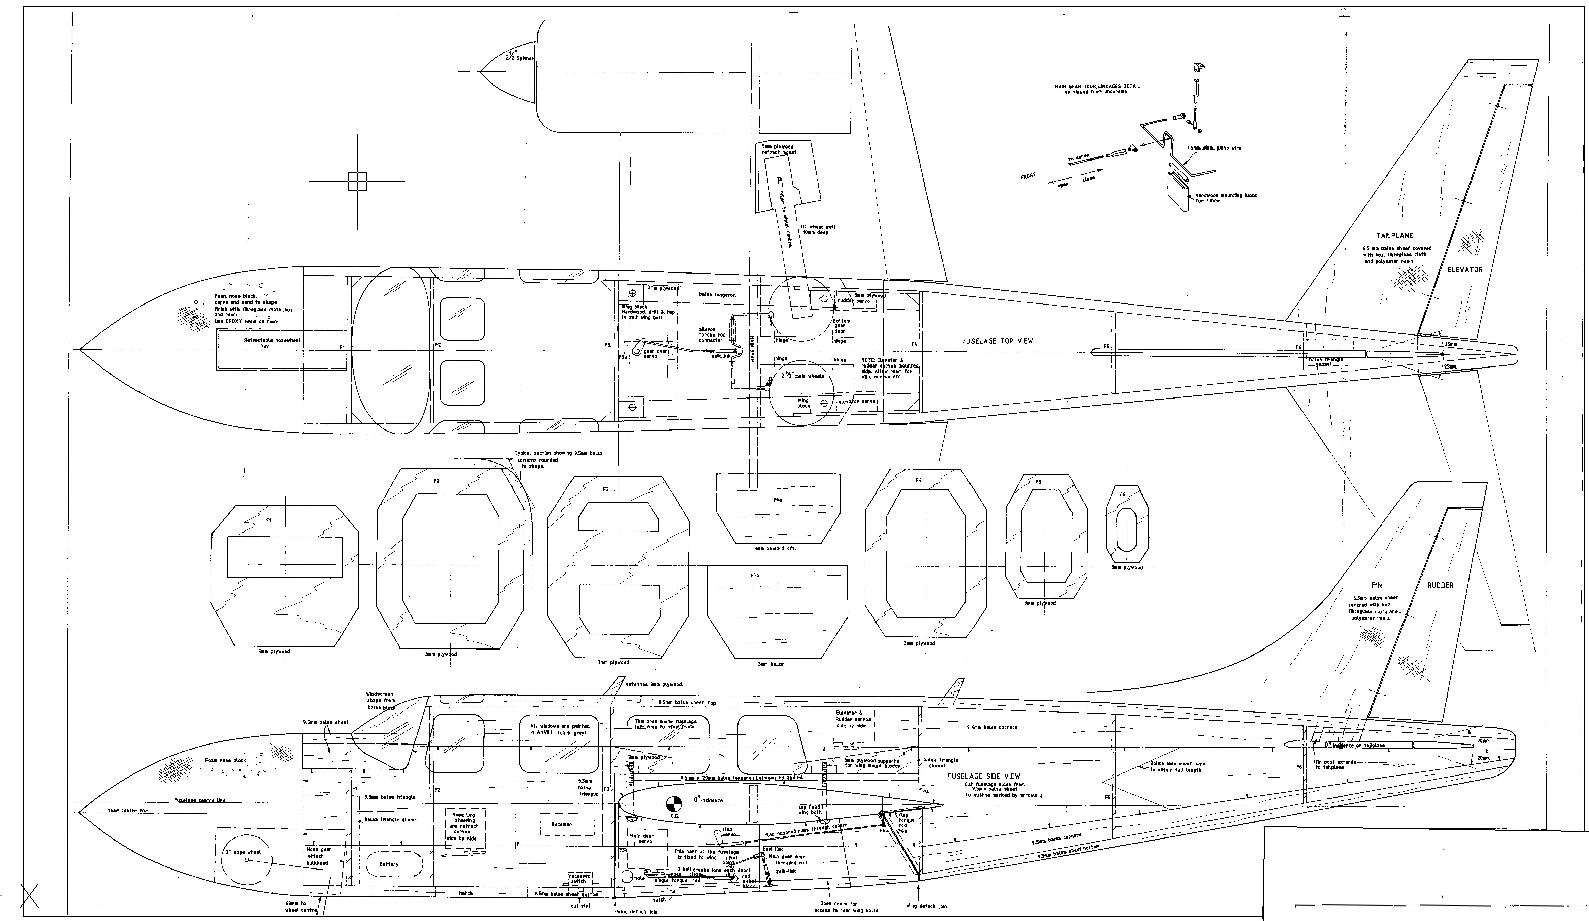 Piper Aerostar 10500 Laser Design Services Engine Diagram Plan Image